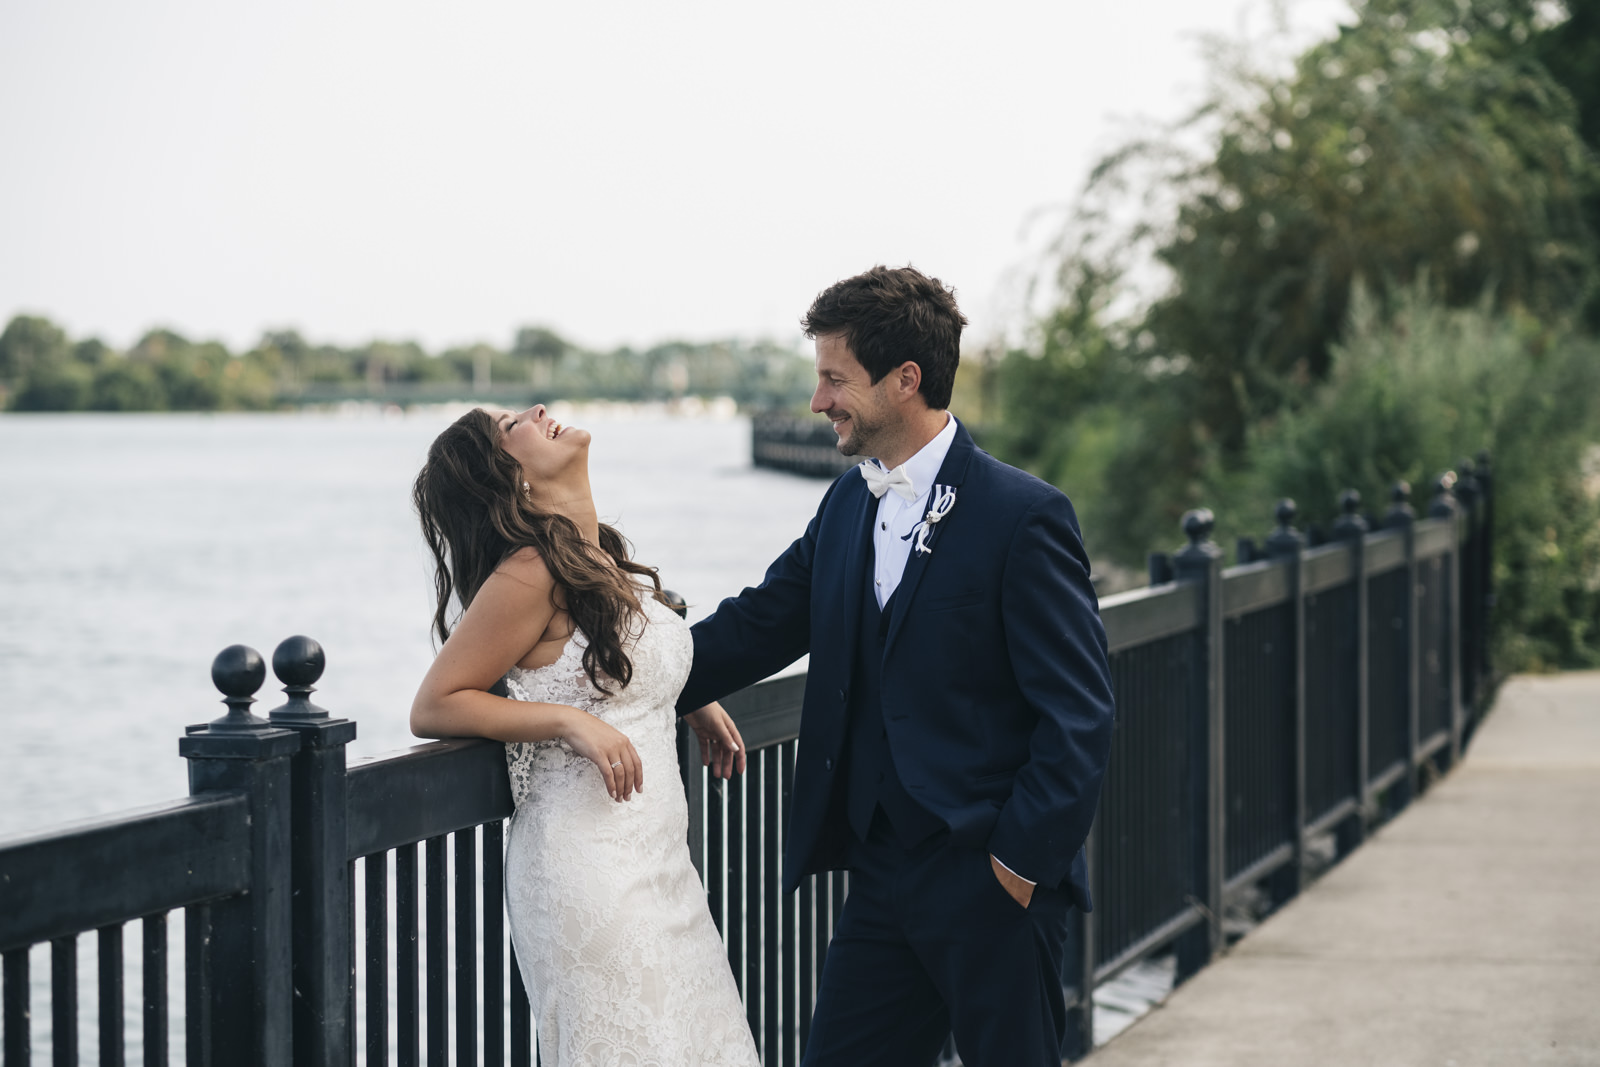 The bride and groom share a laugh near the lake in a relaxed styled session.